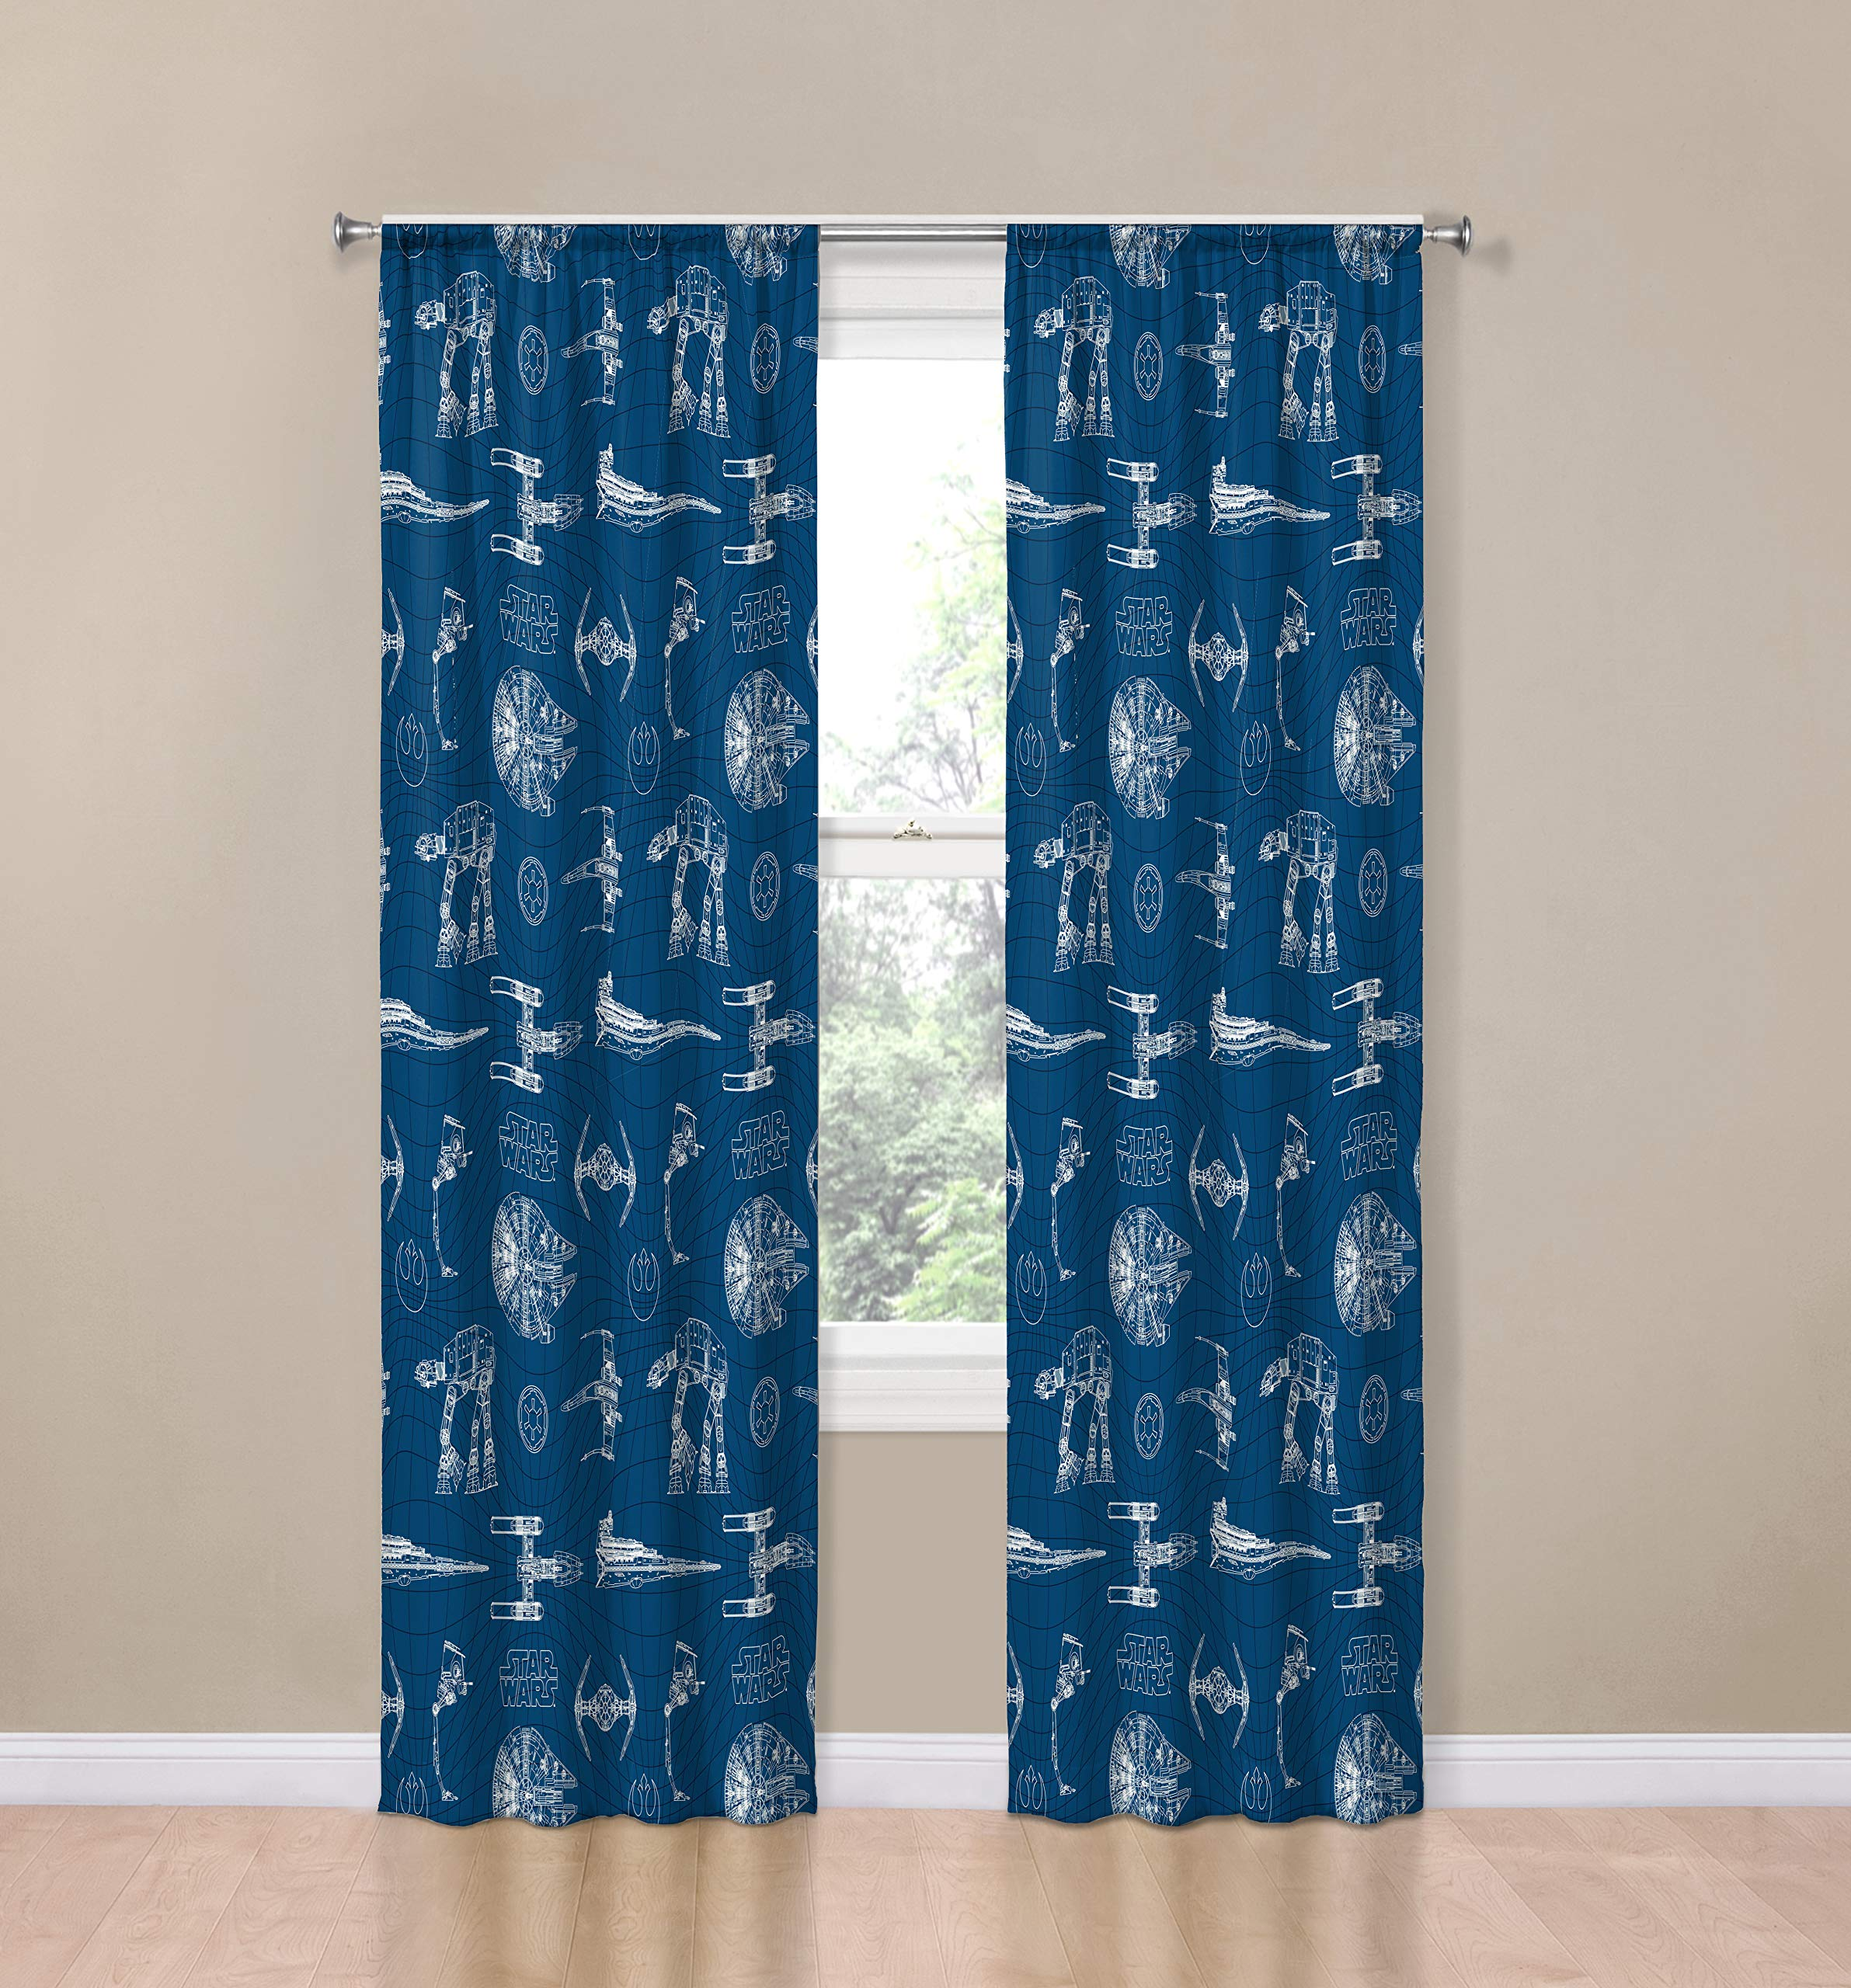 X Games Dragon Drapes Inch LxW 84 x 84-